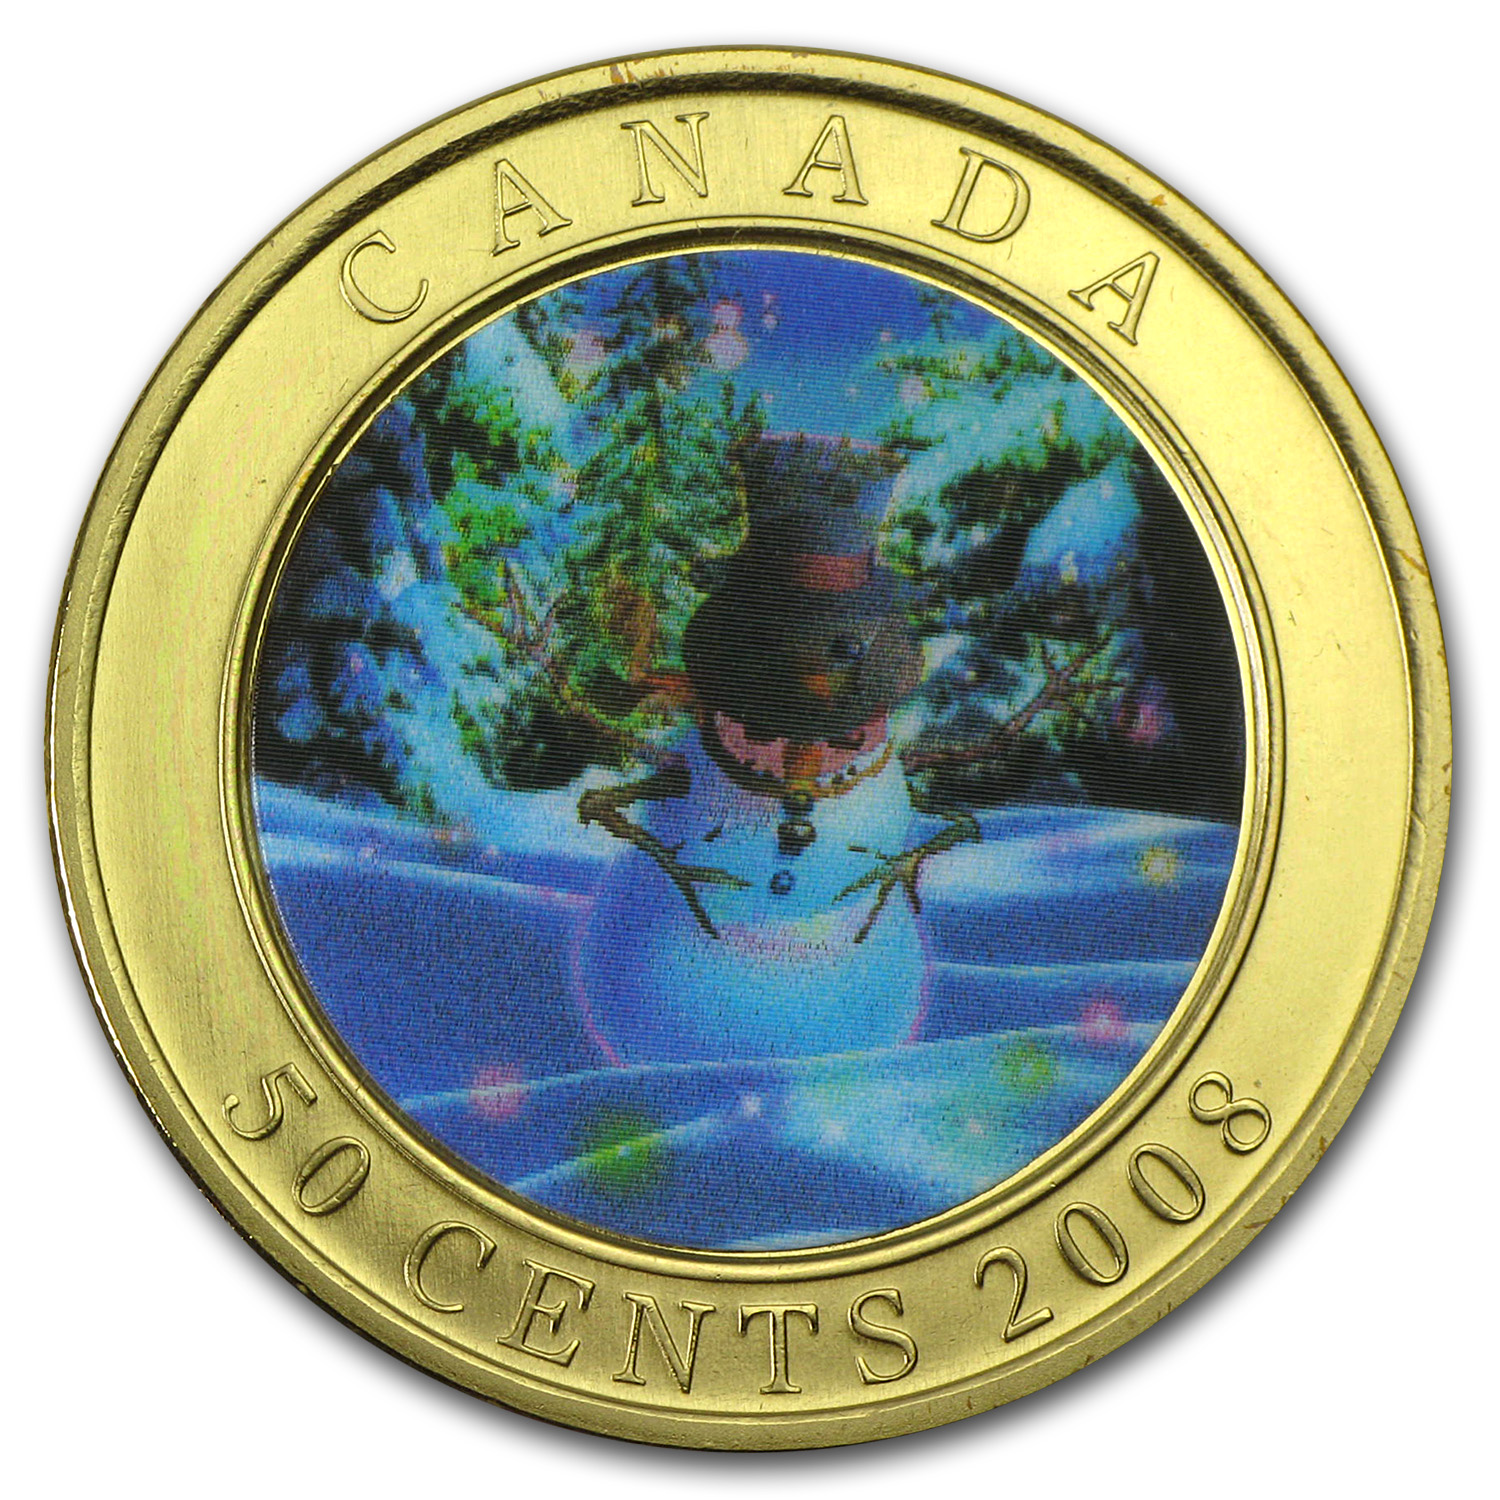 2008 Canadian $0.50 Christmas Lenticular Coin - Holiday Snowman